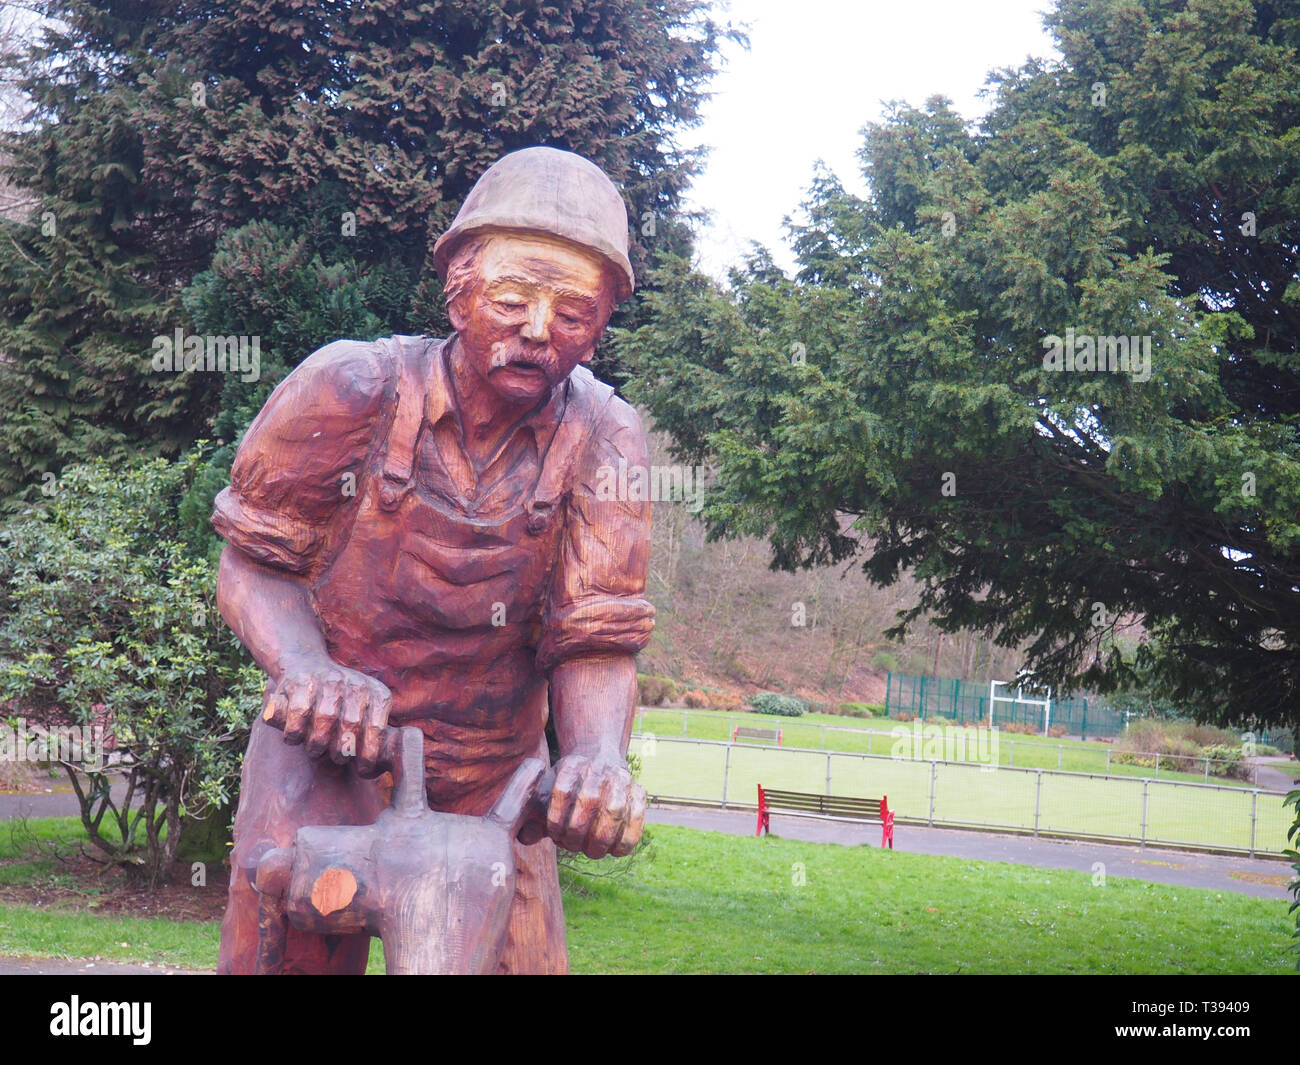 Jack, the Quarryman statue unveiled in Buxton, UK, in January 2018 to celebrate the heritage of quarrying in Buxton and surrounding areas. - Stock Image